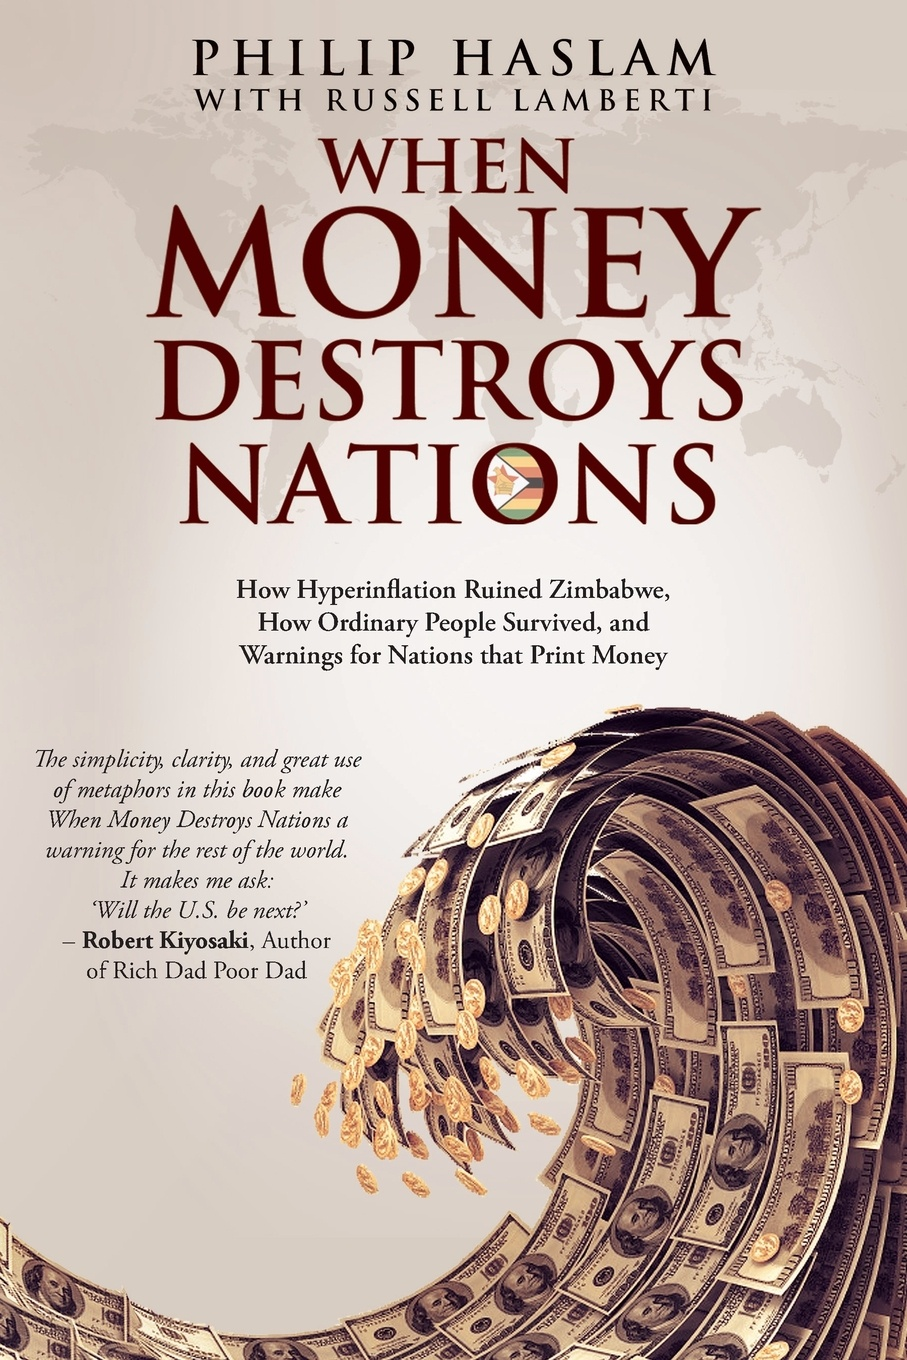 When Money Destroys Nations. How Hyperinflation Ruined Zimbabwe, How Ordinary People Survived, and Warnings for Nations that Print Money